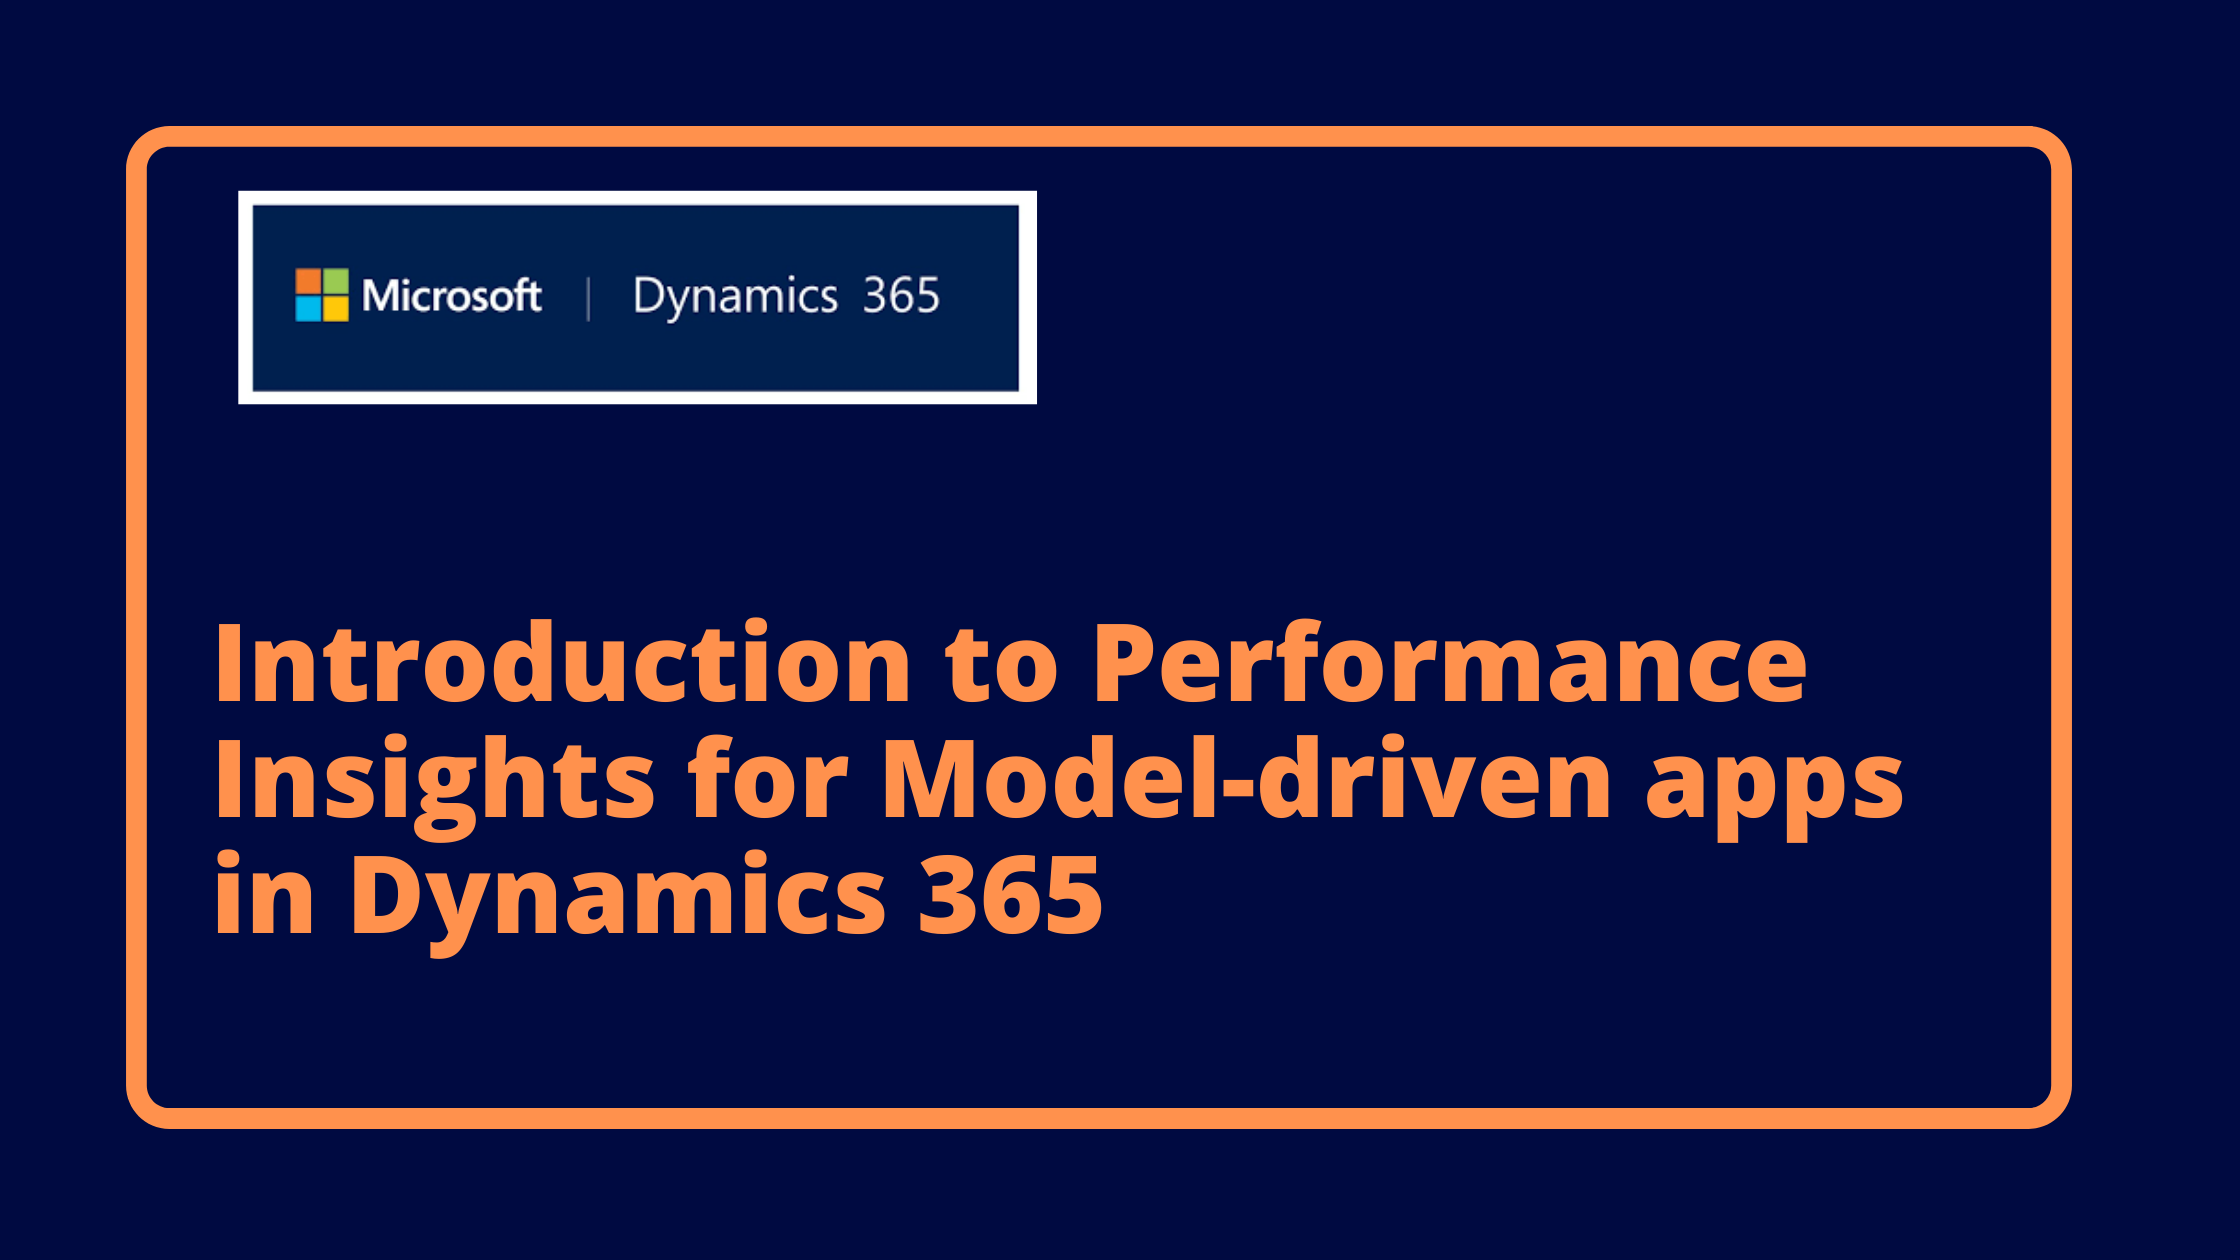 Introduction to Performance Insights for Model-driven apps in Dynamics 365